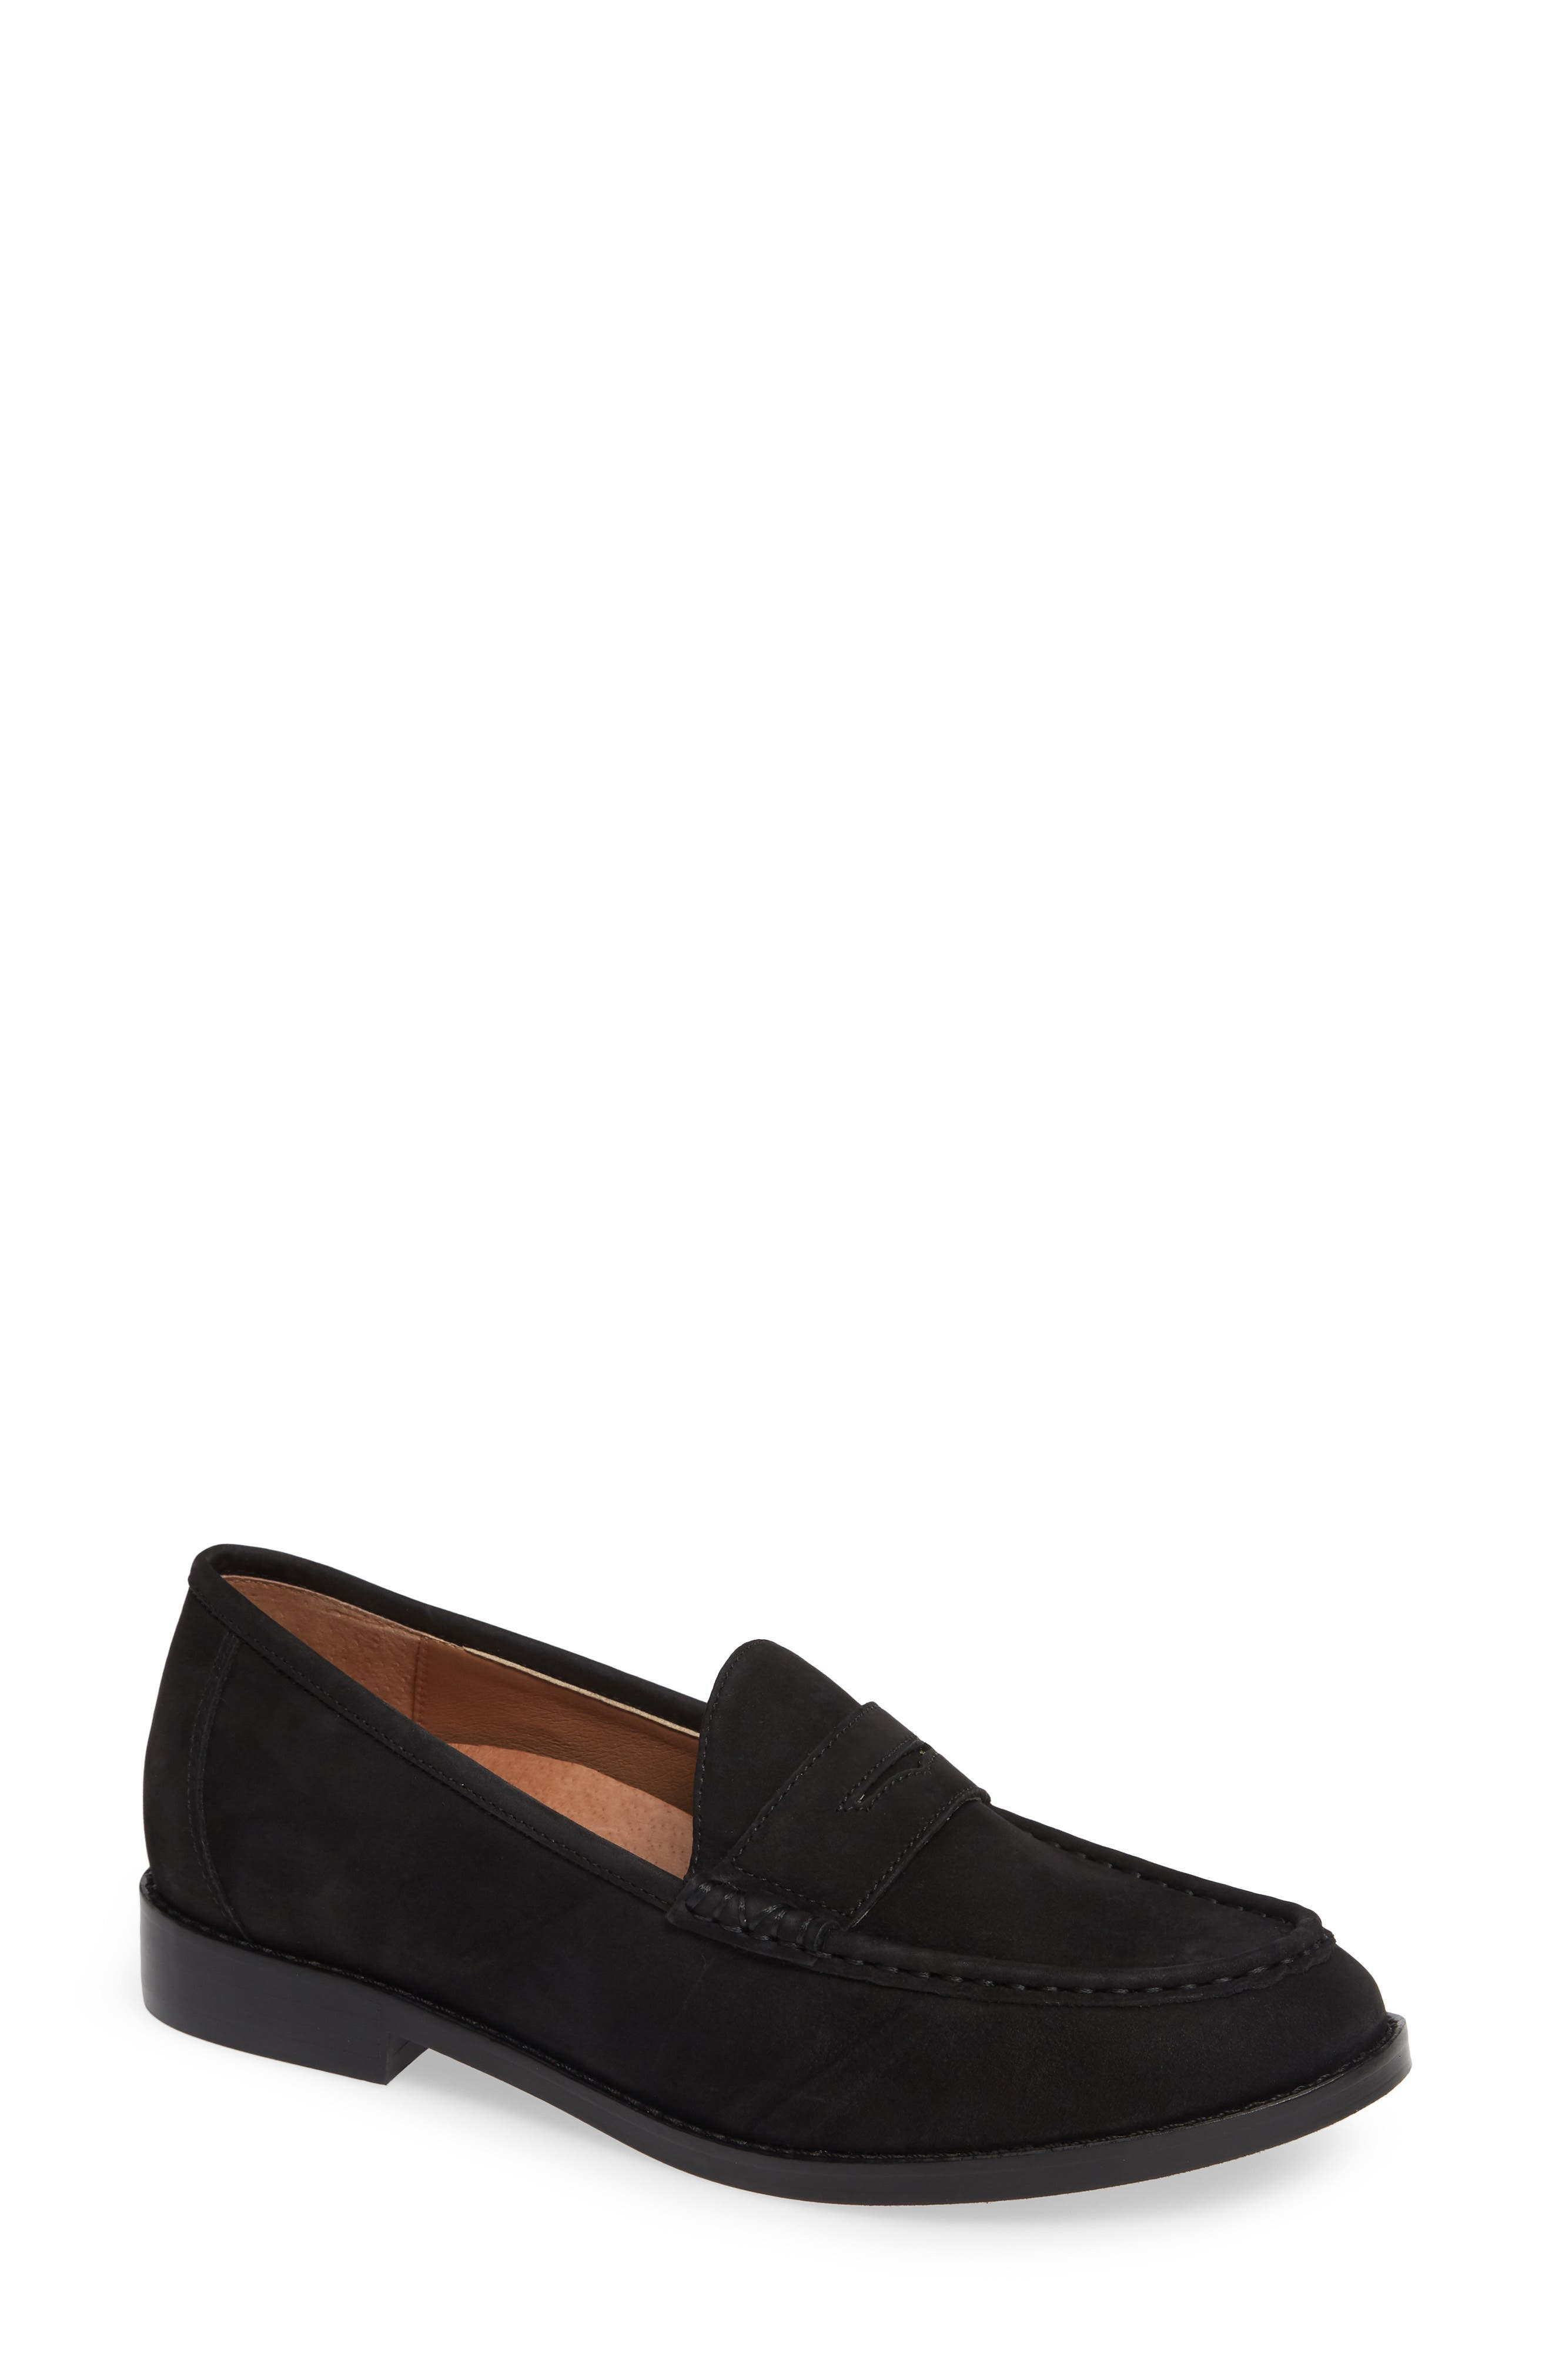 VIONIC, Waverly Loafer, Main thumbnail 1, color, BLACK LEATHER